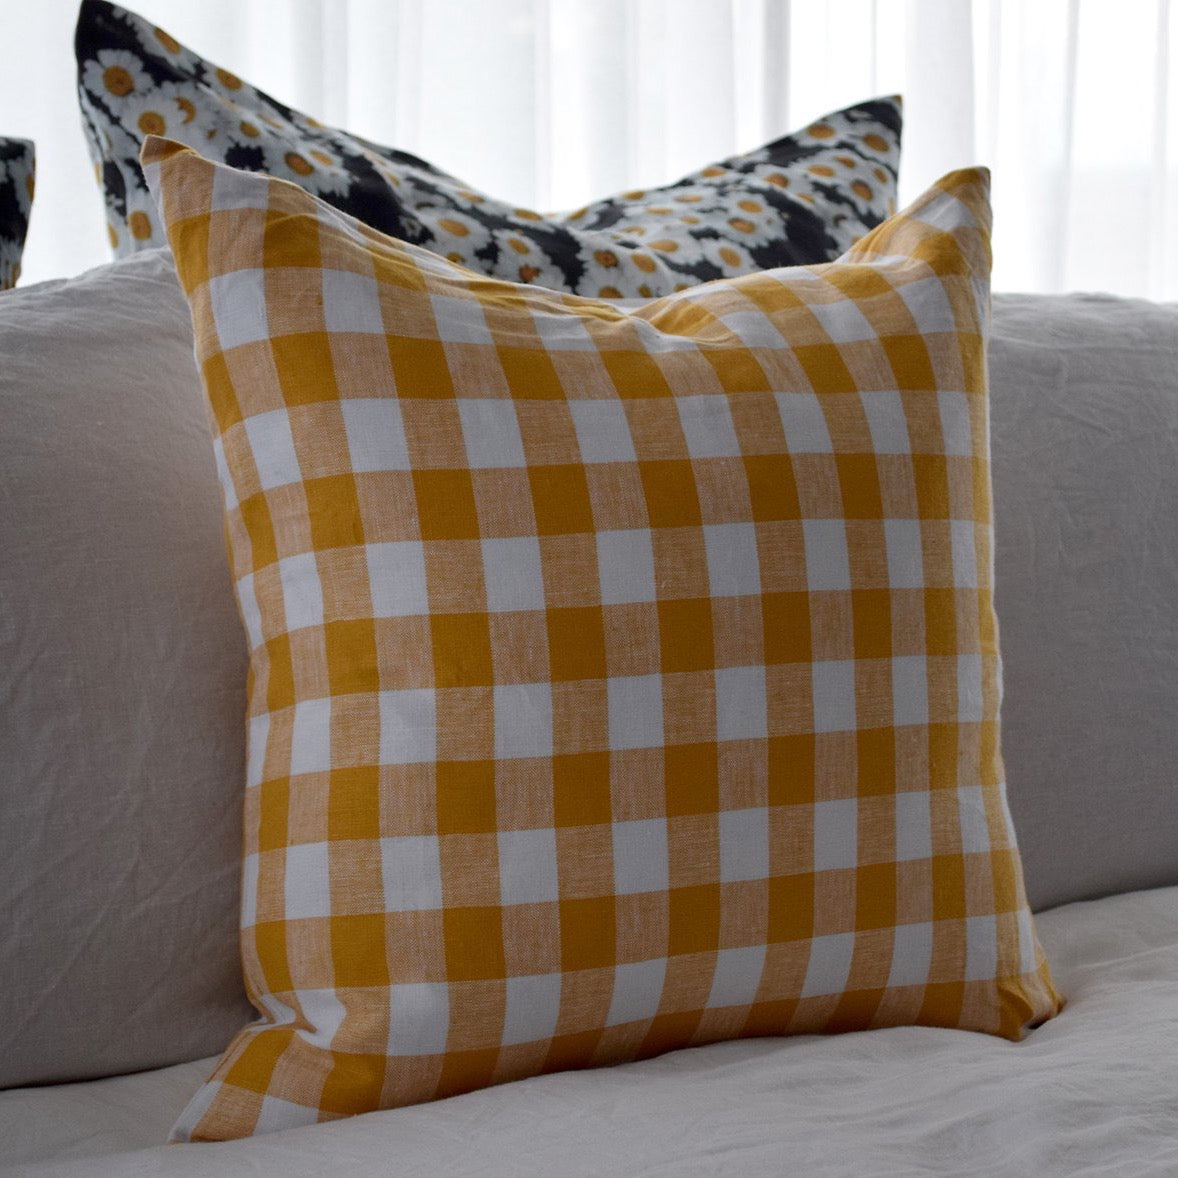 Checkmate Linen Cushion Cover - Marigold